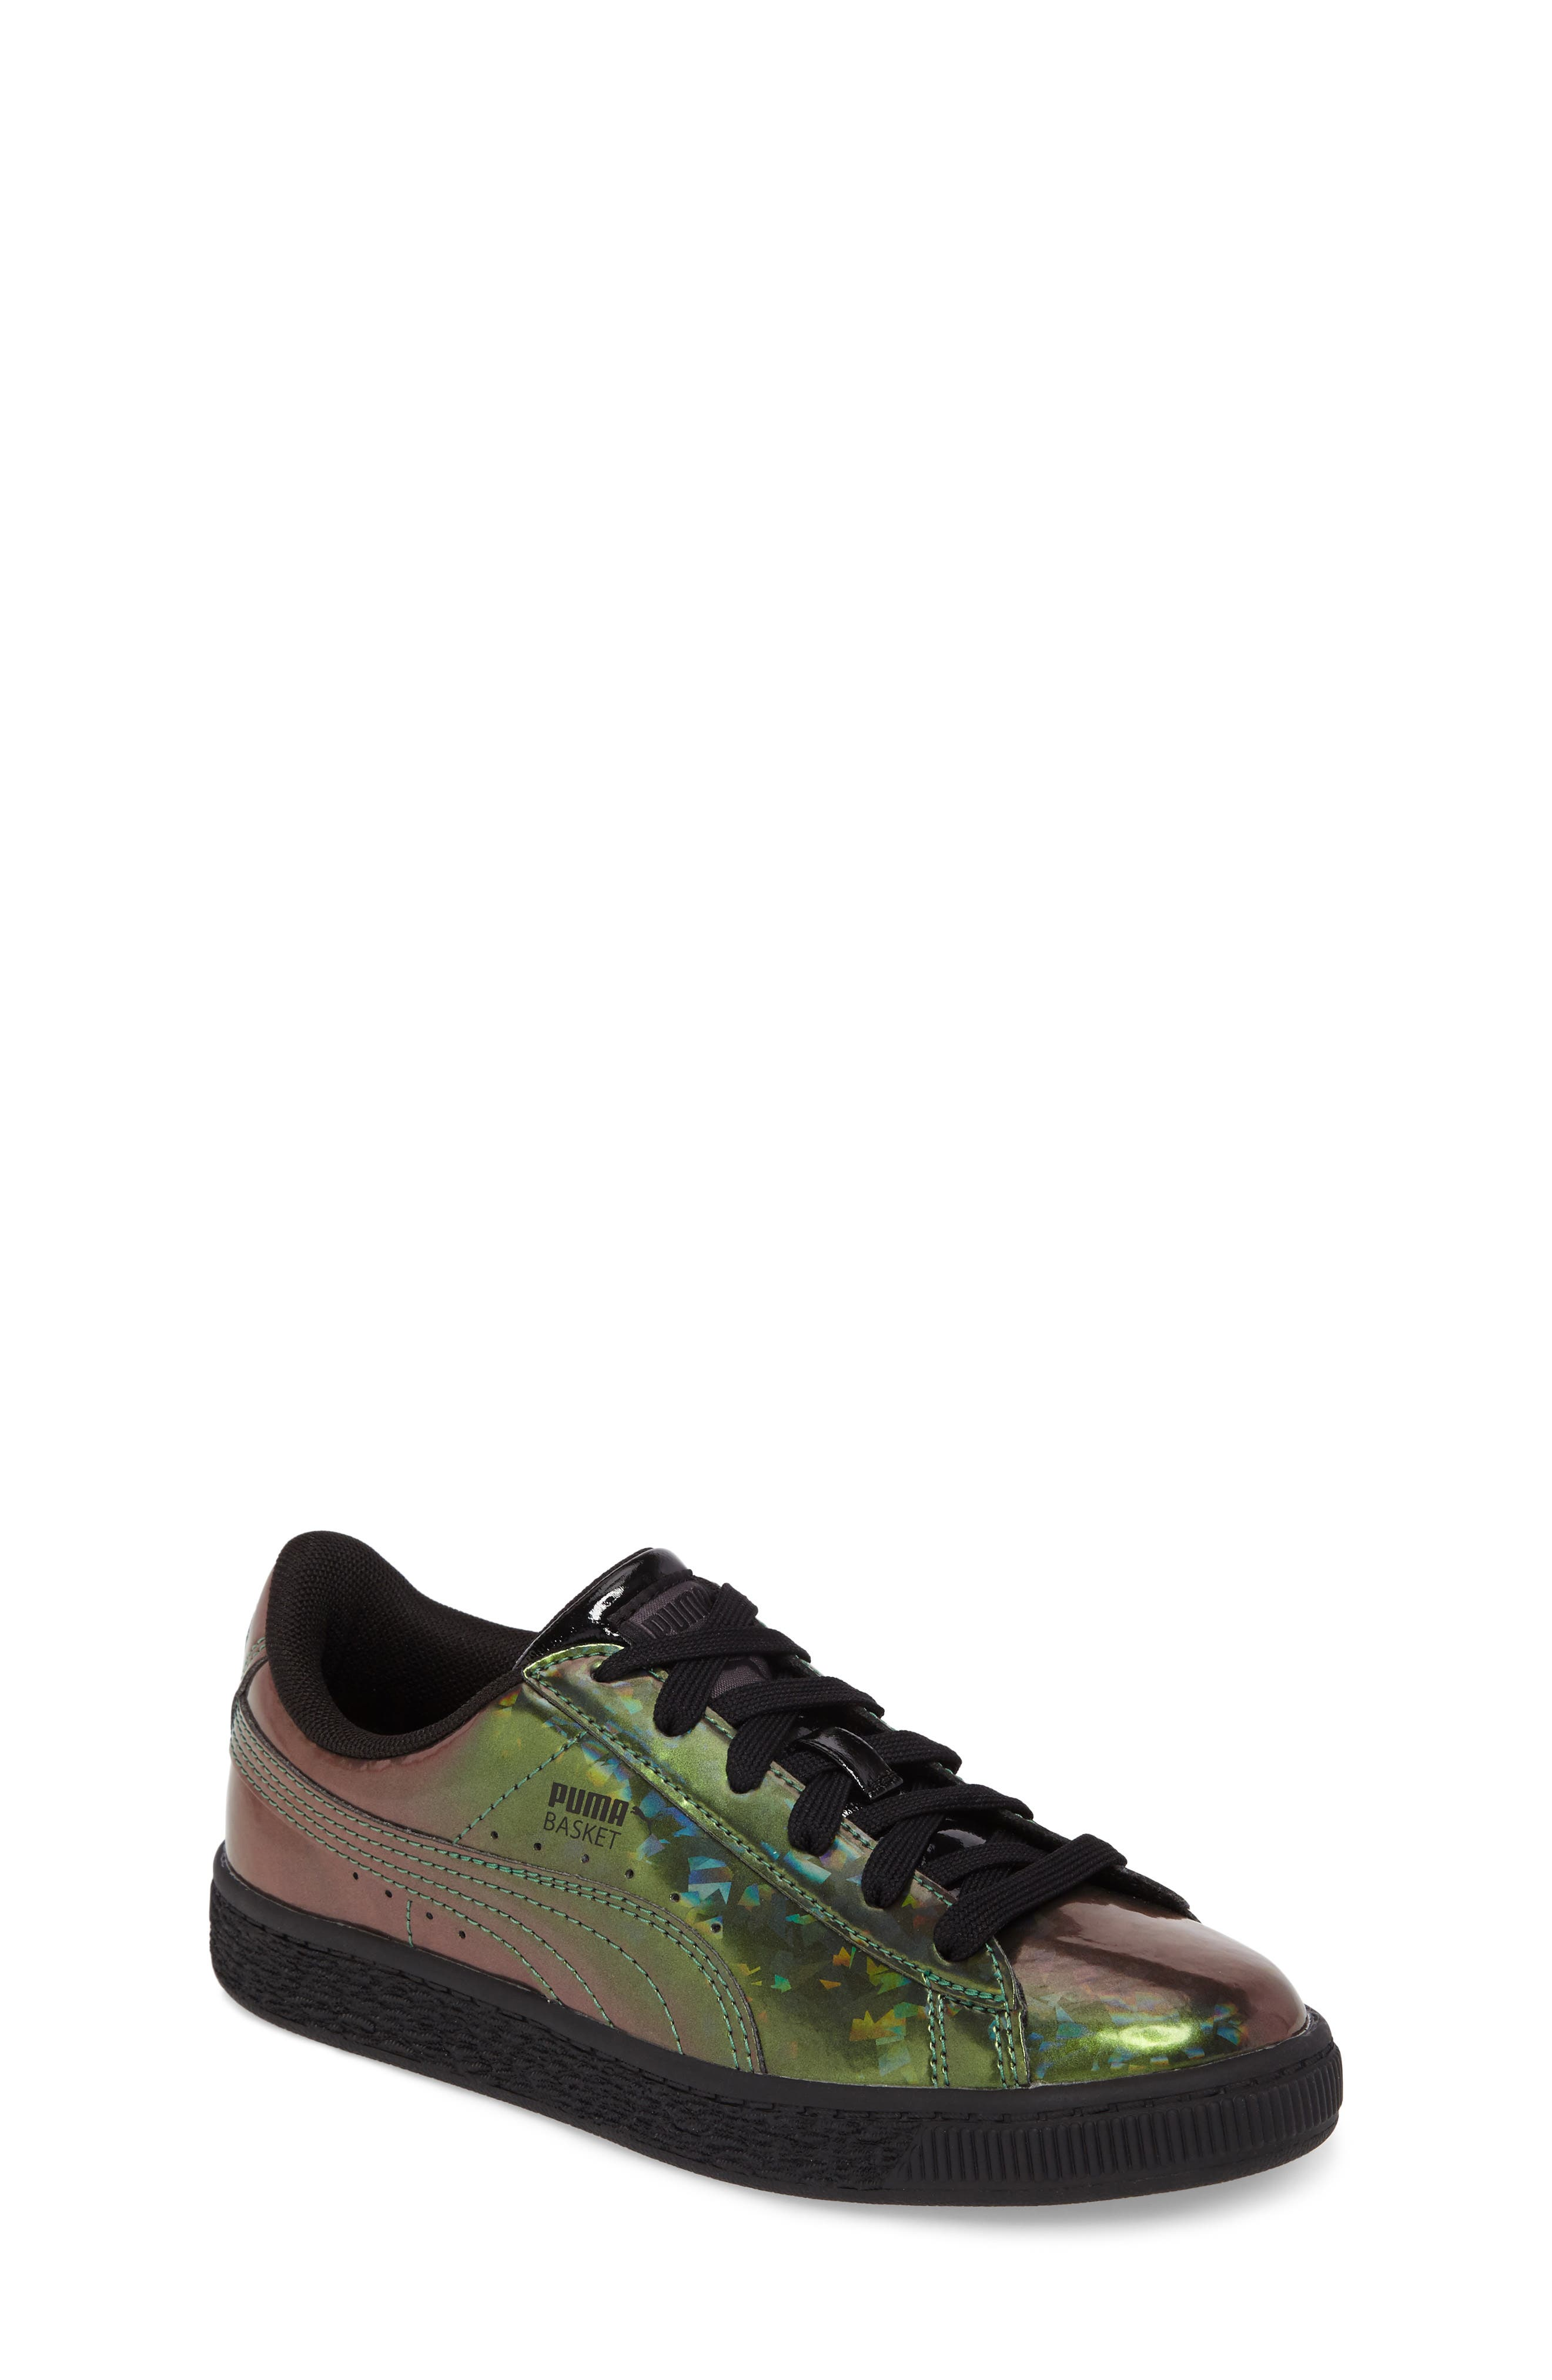 Basket Classic Holo PS Sneaker,                         Main,                         color,